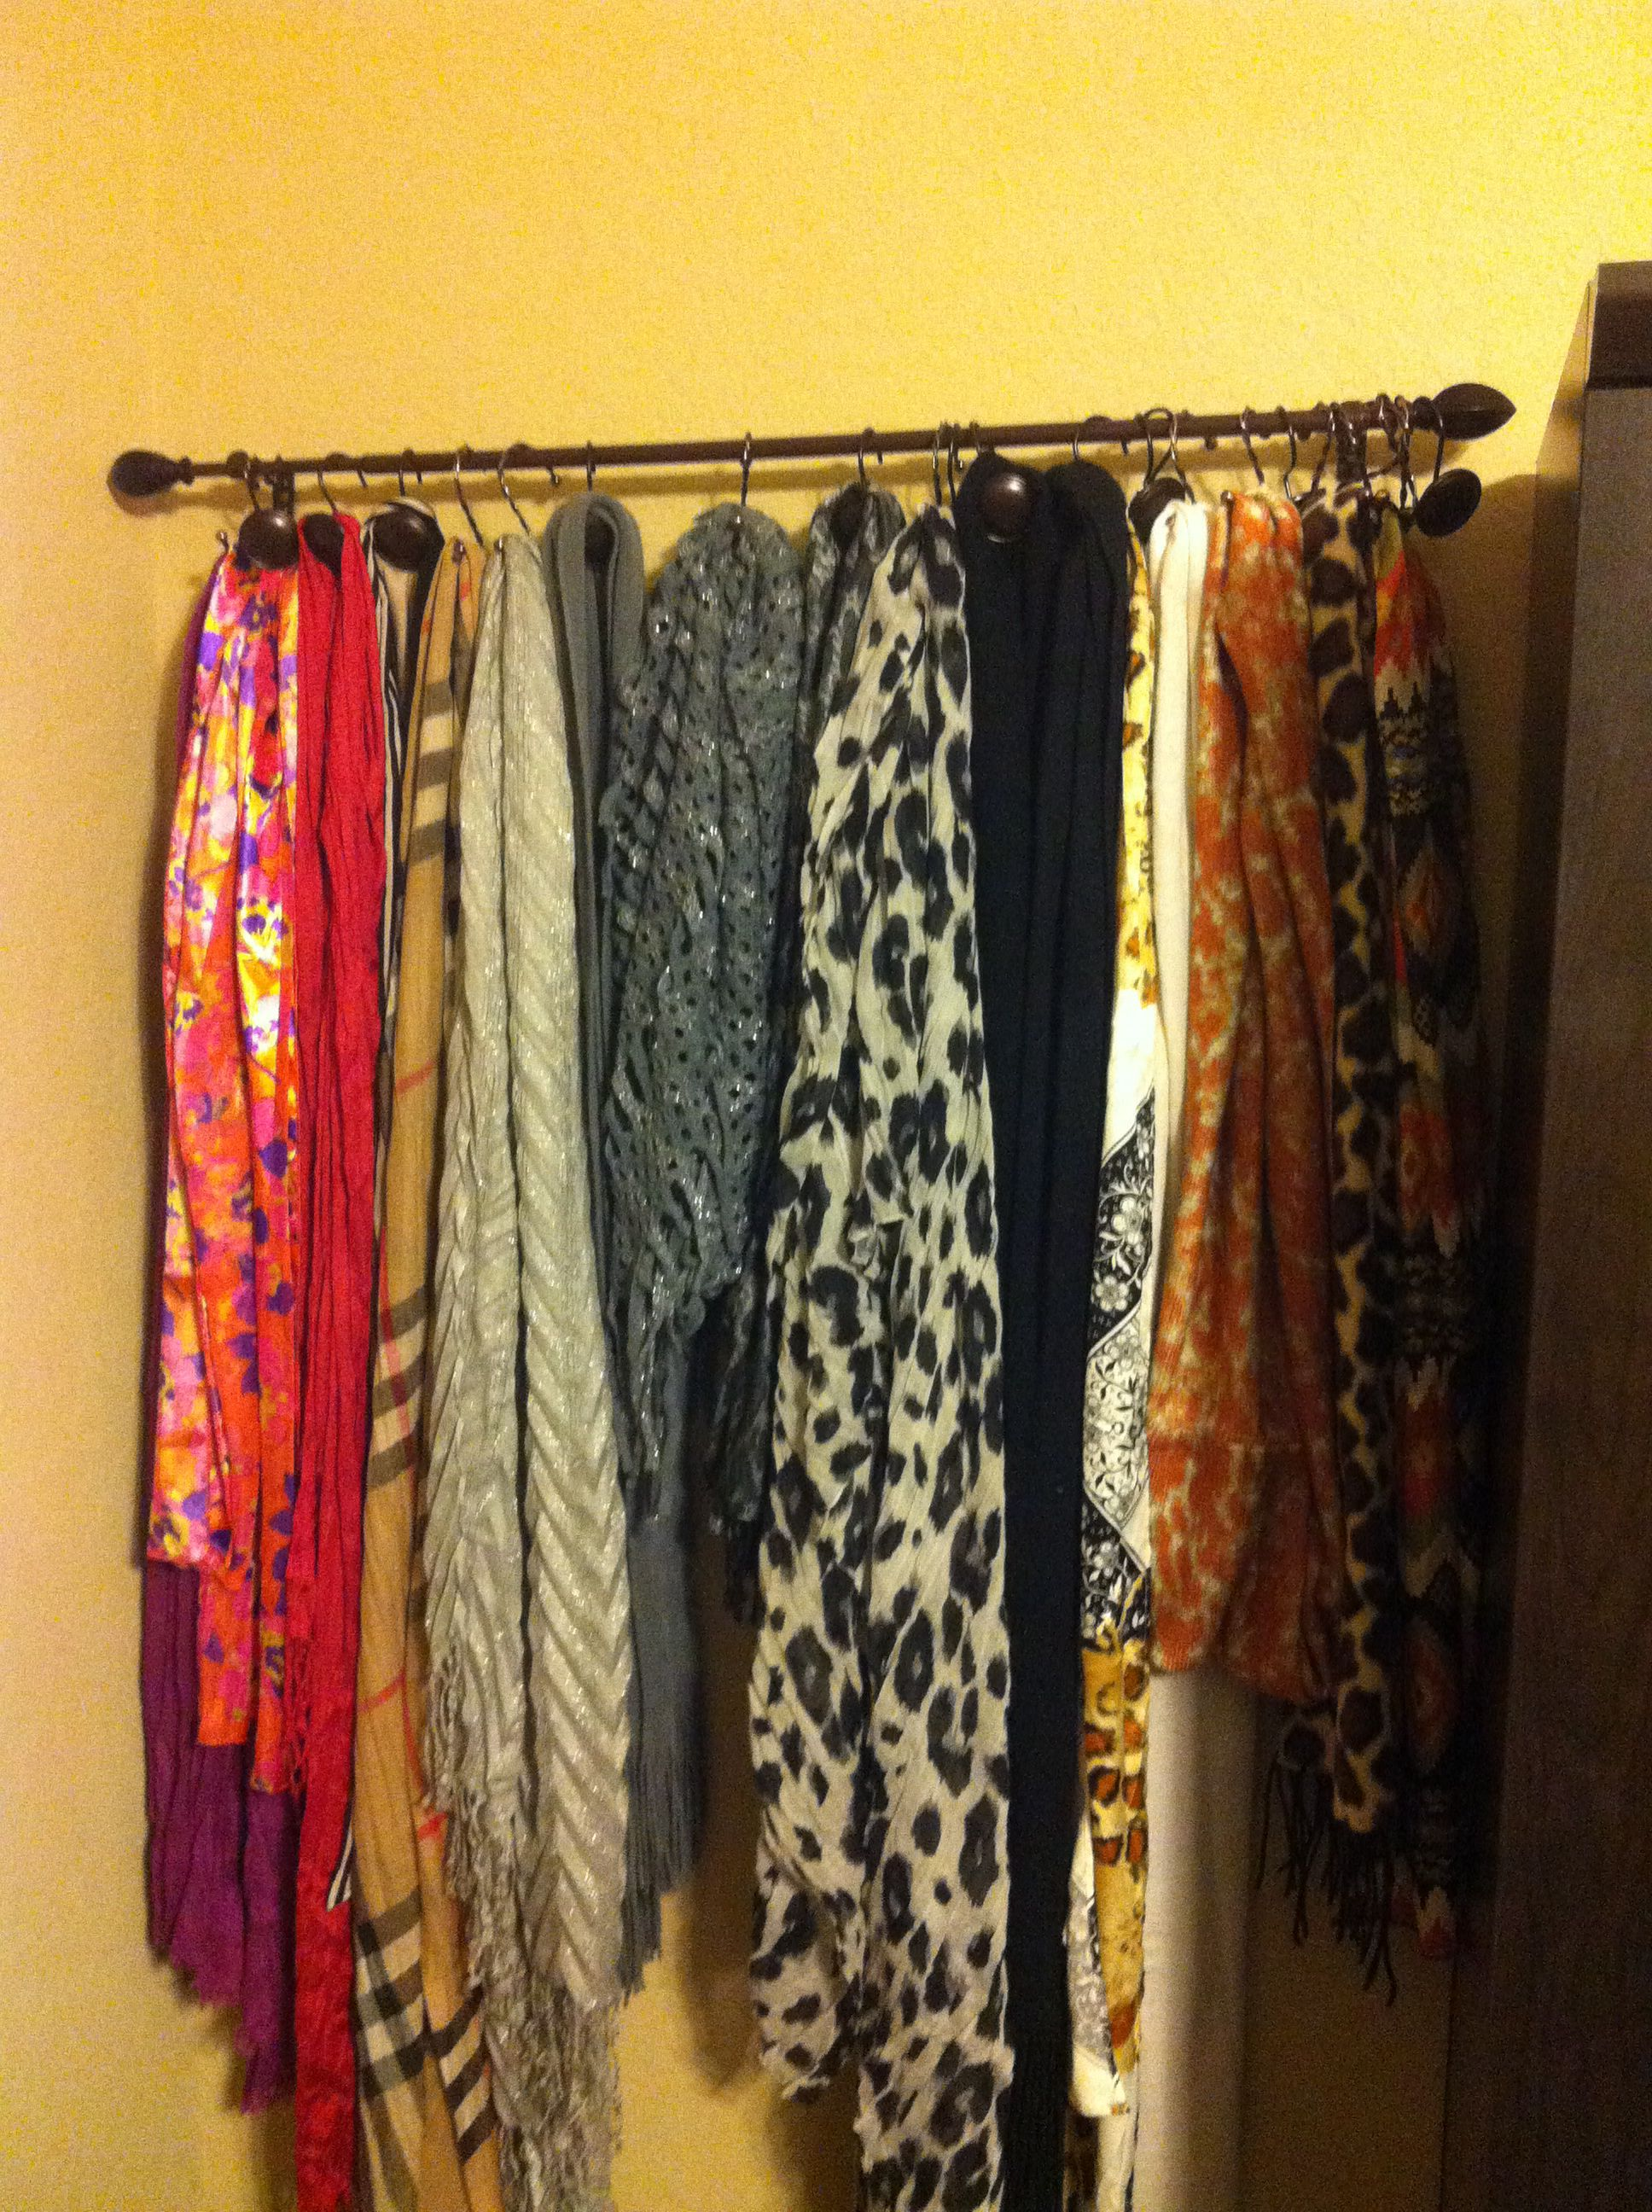 Scarf Organizer Simple Easy And Cheap Curtain Rod 4 99 Ross Fishkind Shower Hooks 3 99ross Fun Di Scarf Organization Diy Organization Room Organization